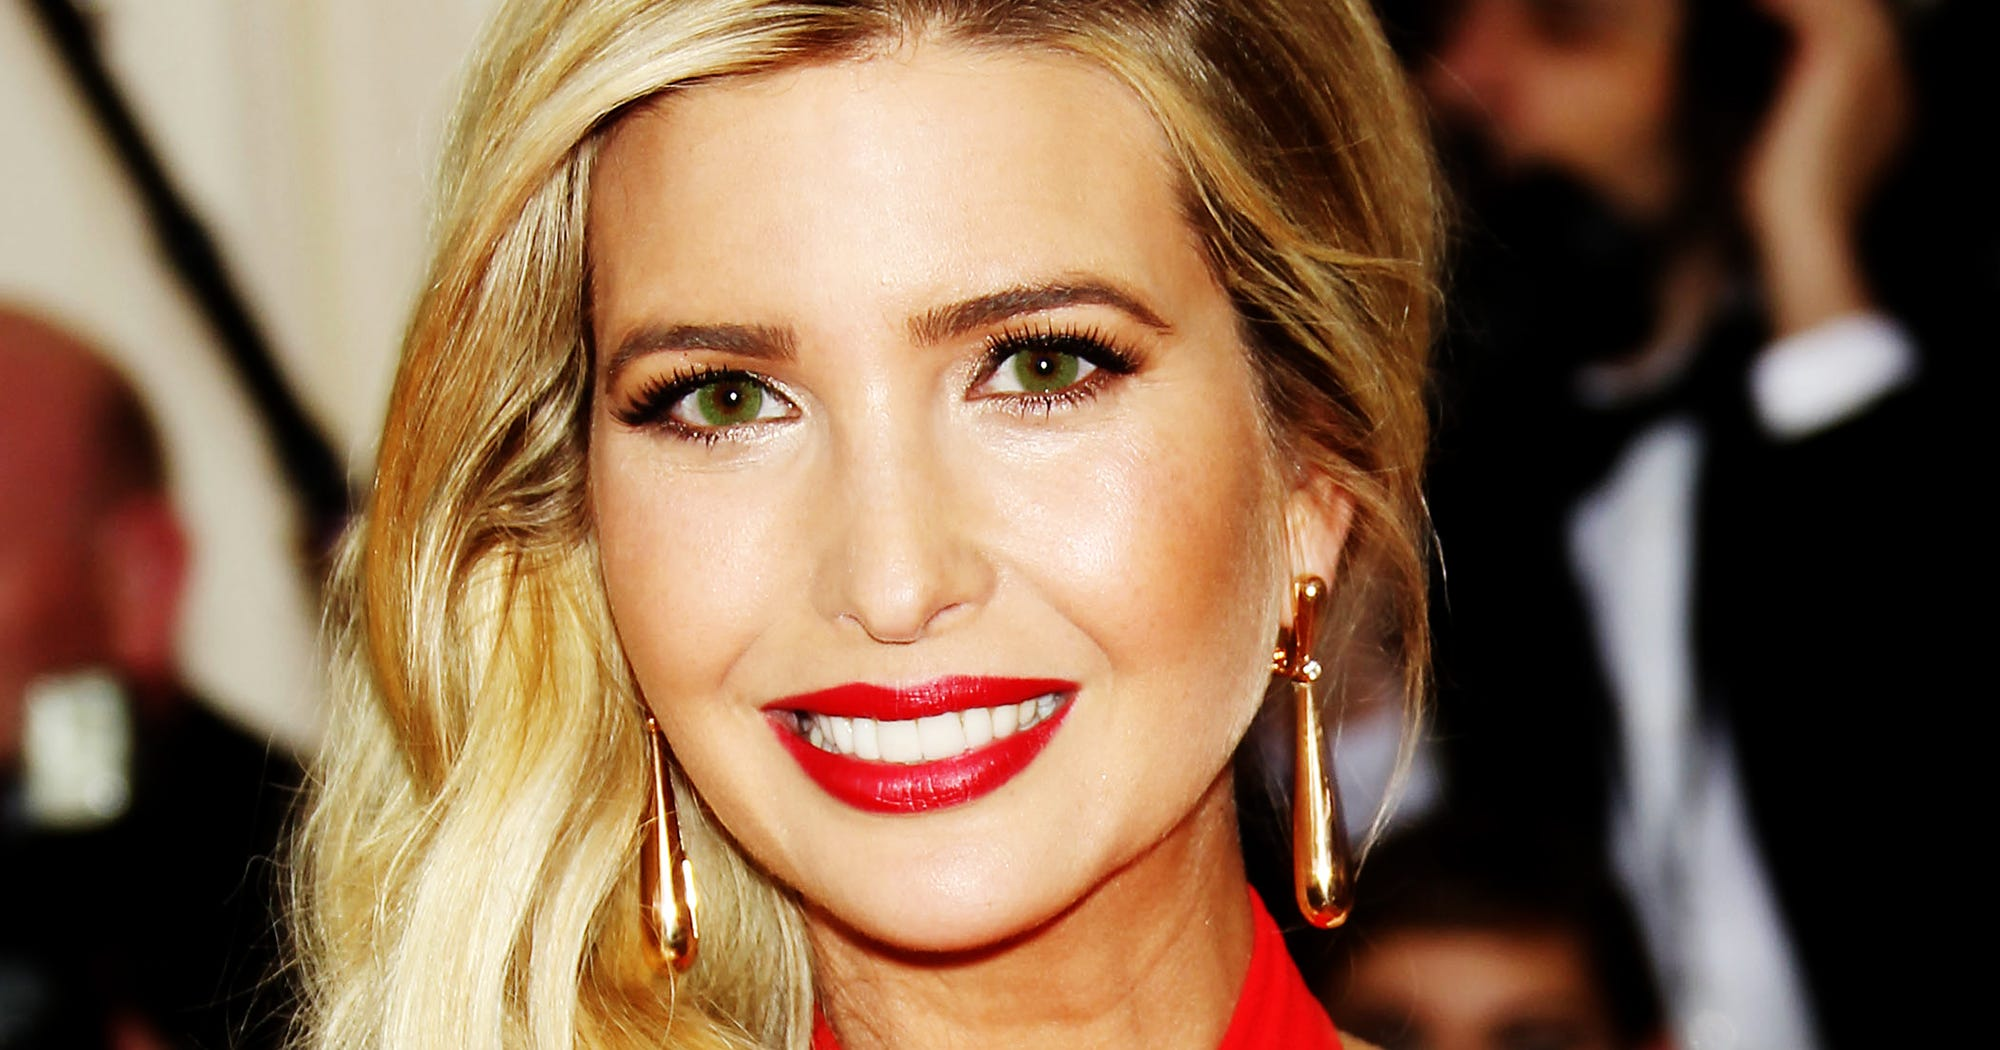 Ivanka Trump Colored Contacts Changing Eye Color Risks